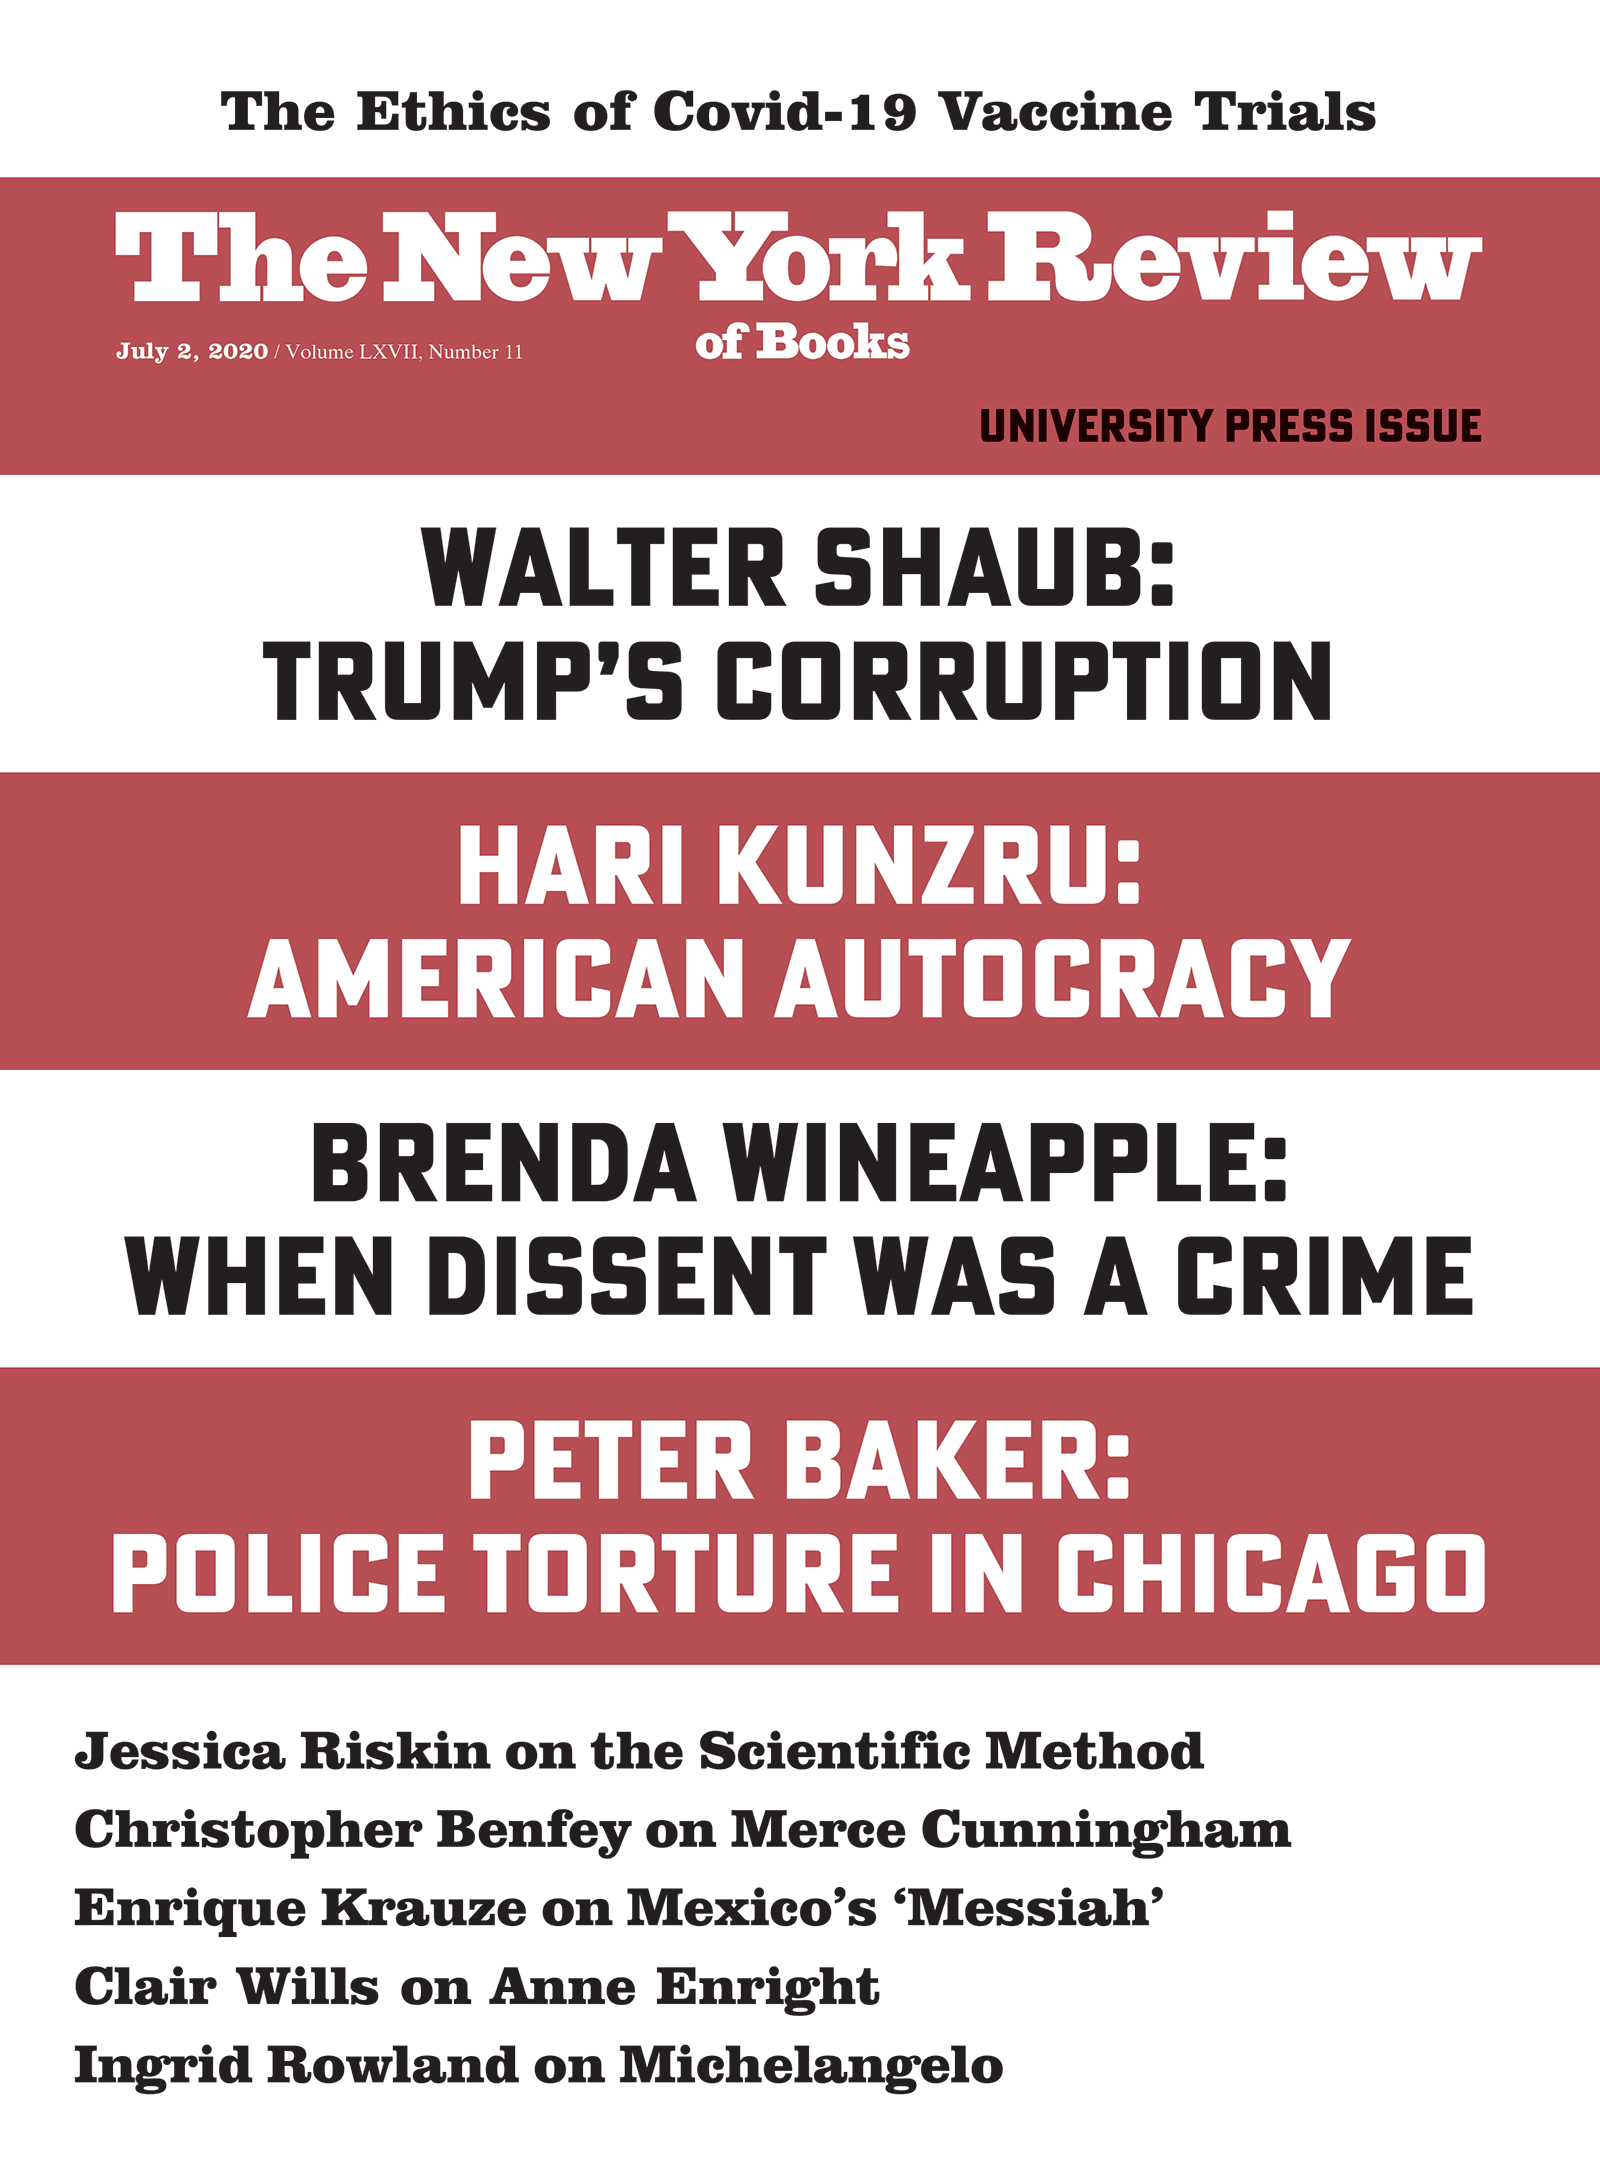 Image of the July 2, 2020 issue cover.